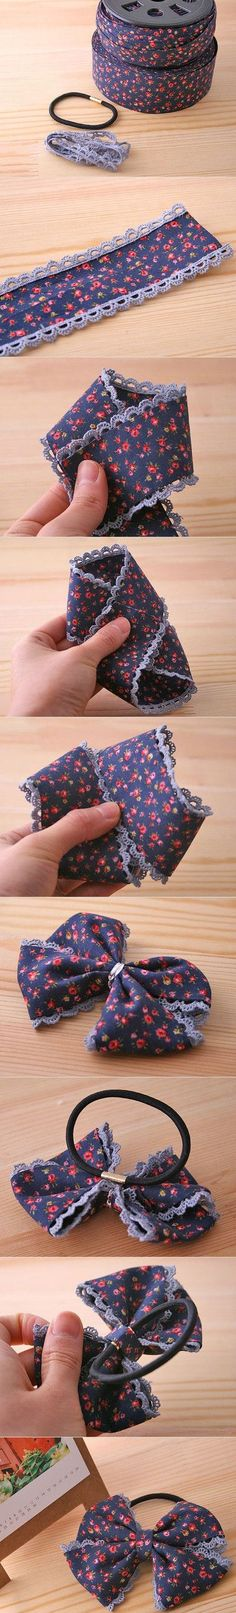 Pile of sugar, find life, collect beautiful, share pictures: crafts headbands, - Fabric Crafts - Ribbon Art, Diy Ribbon, Ribbon Crafts, Ribbon Bows, Fabric Crafts, Diy Crafts, Ribbons, Making Hair Bows, Diy Hair Bows